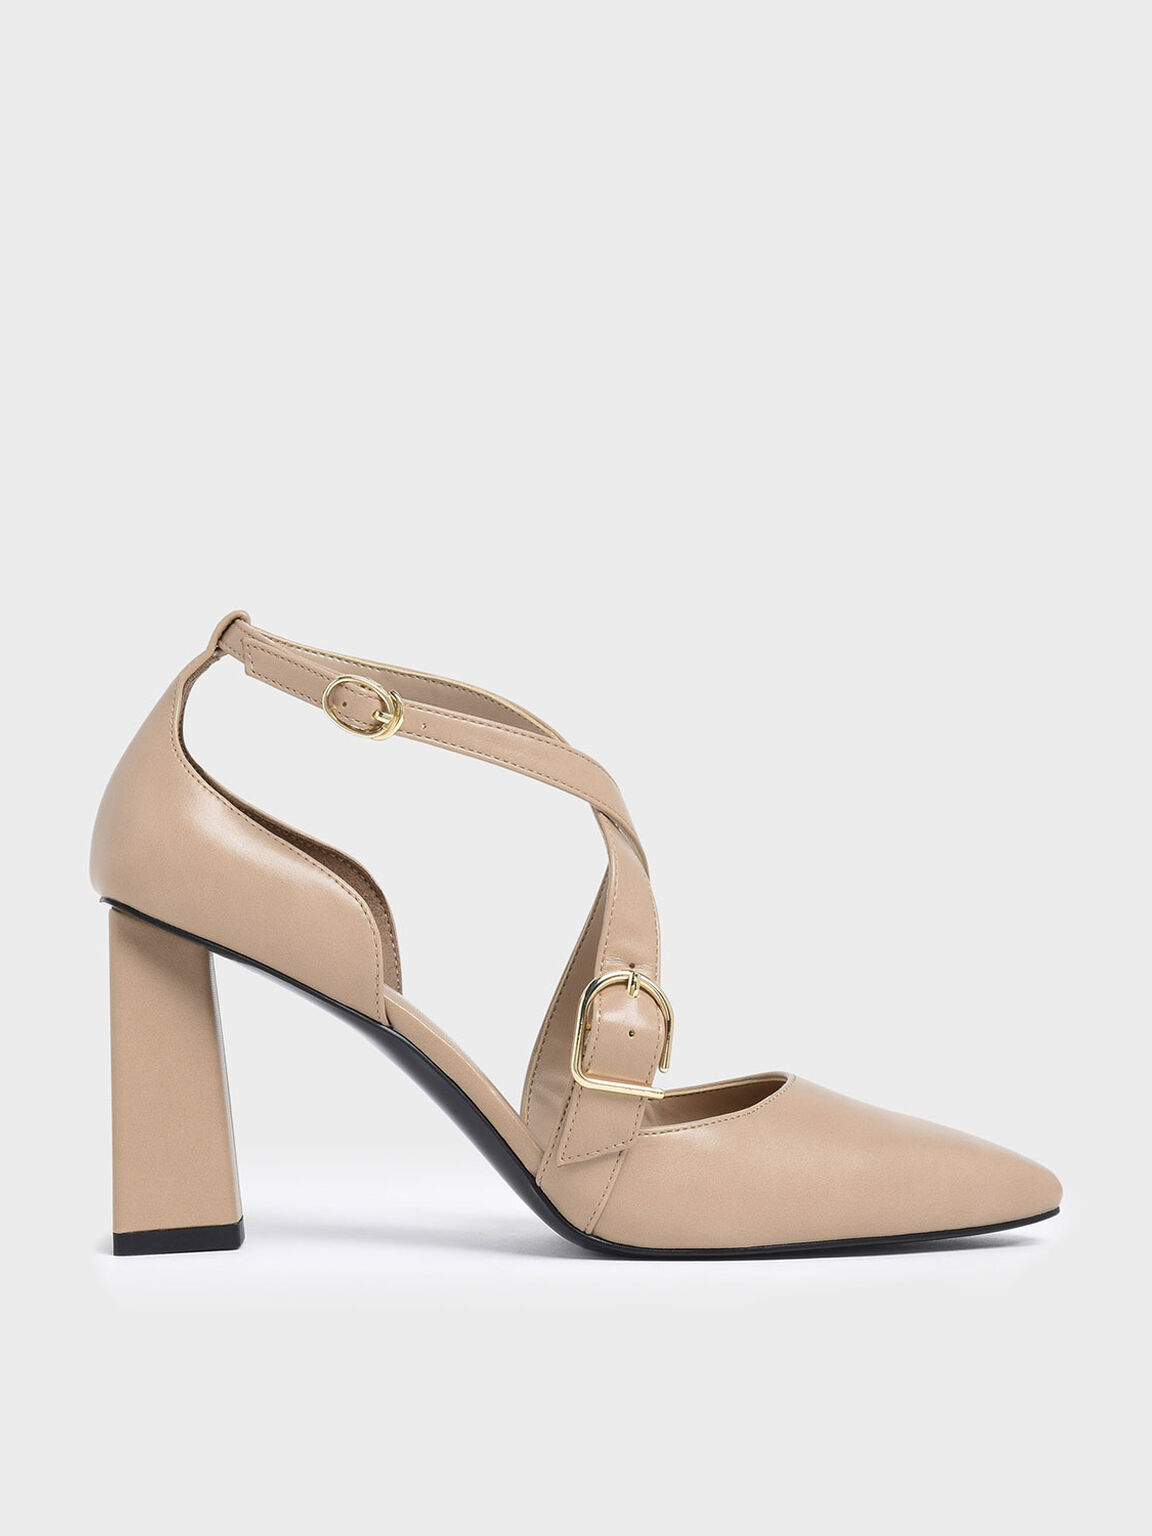 Buckle Detail Criss Cross Block Heel Pumps, Nude, hi-res